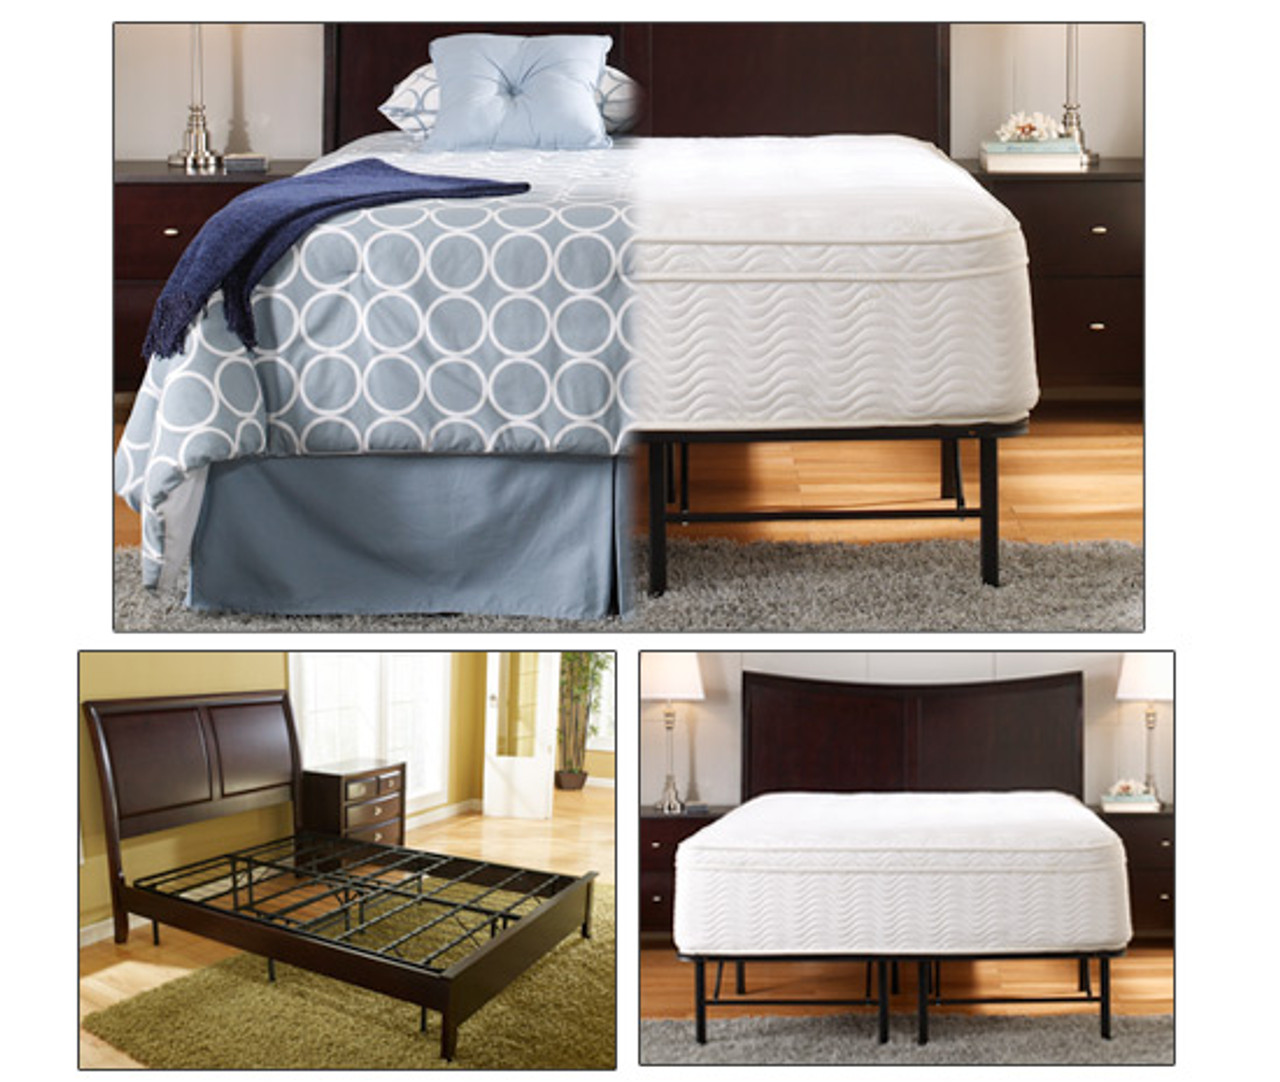 The attractive and heavy-duty frame will support even the heaviest of weterbeds while providing ample underbed storage space.